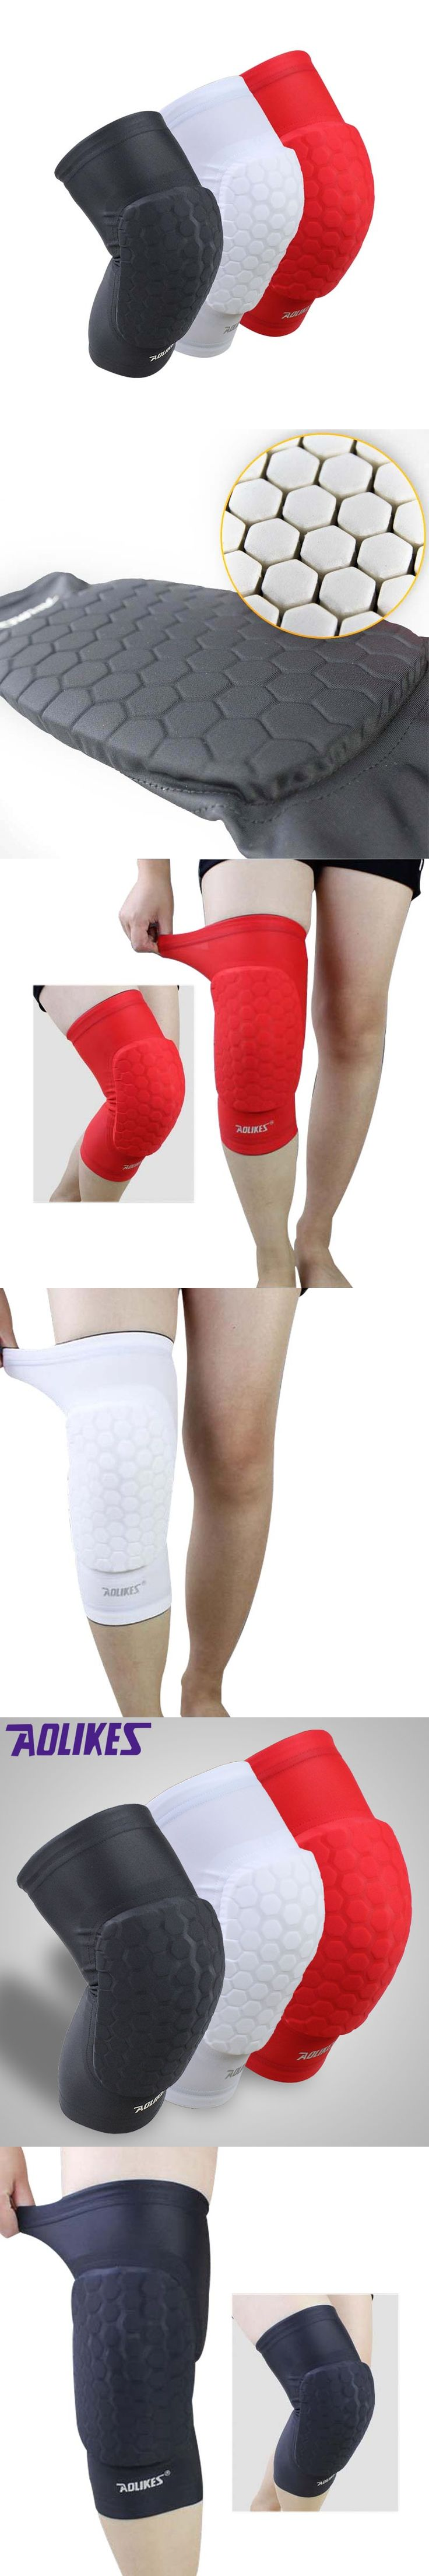 1PCS Hex Sponge Knee Pads Leg Compression Sleeve Knee Braces for Basketball Kneepad Support Sports Safety